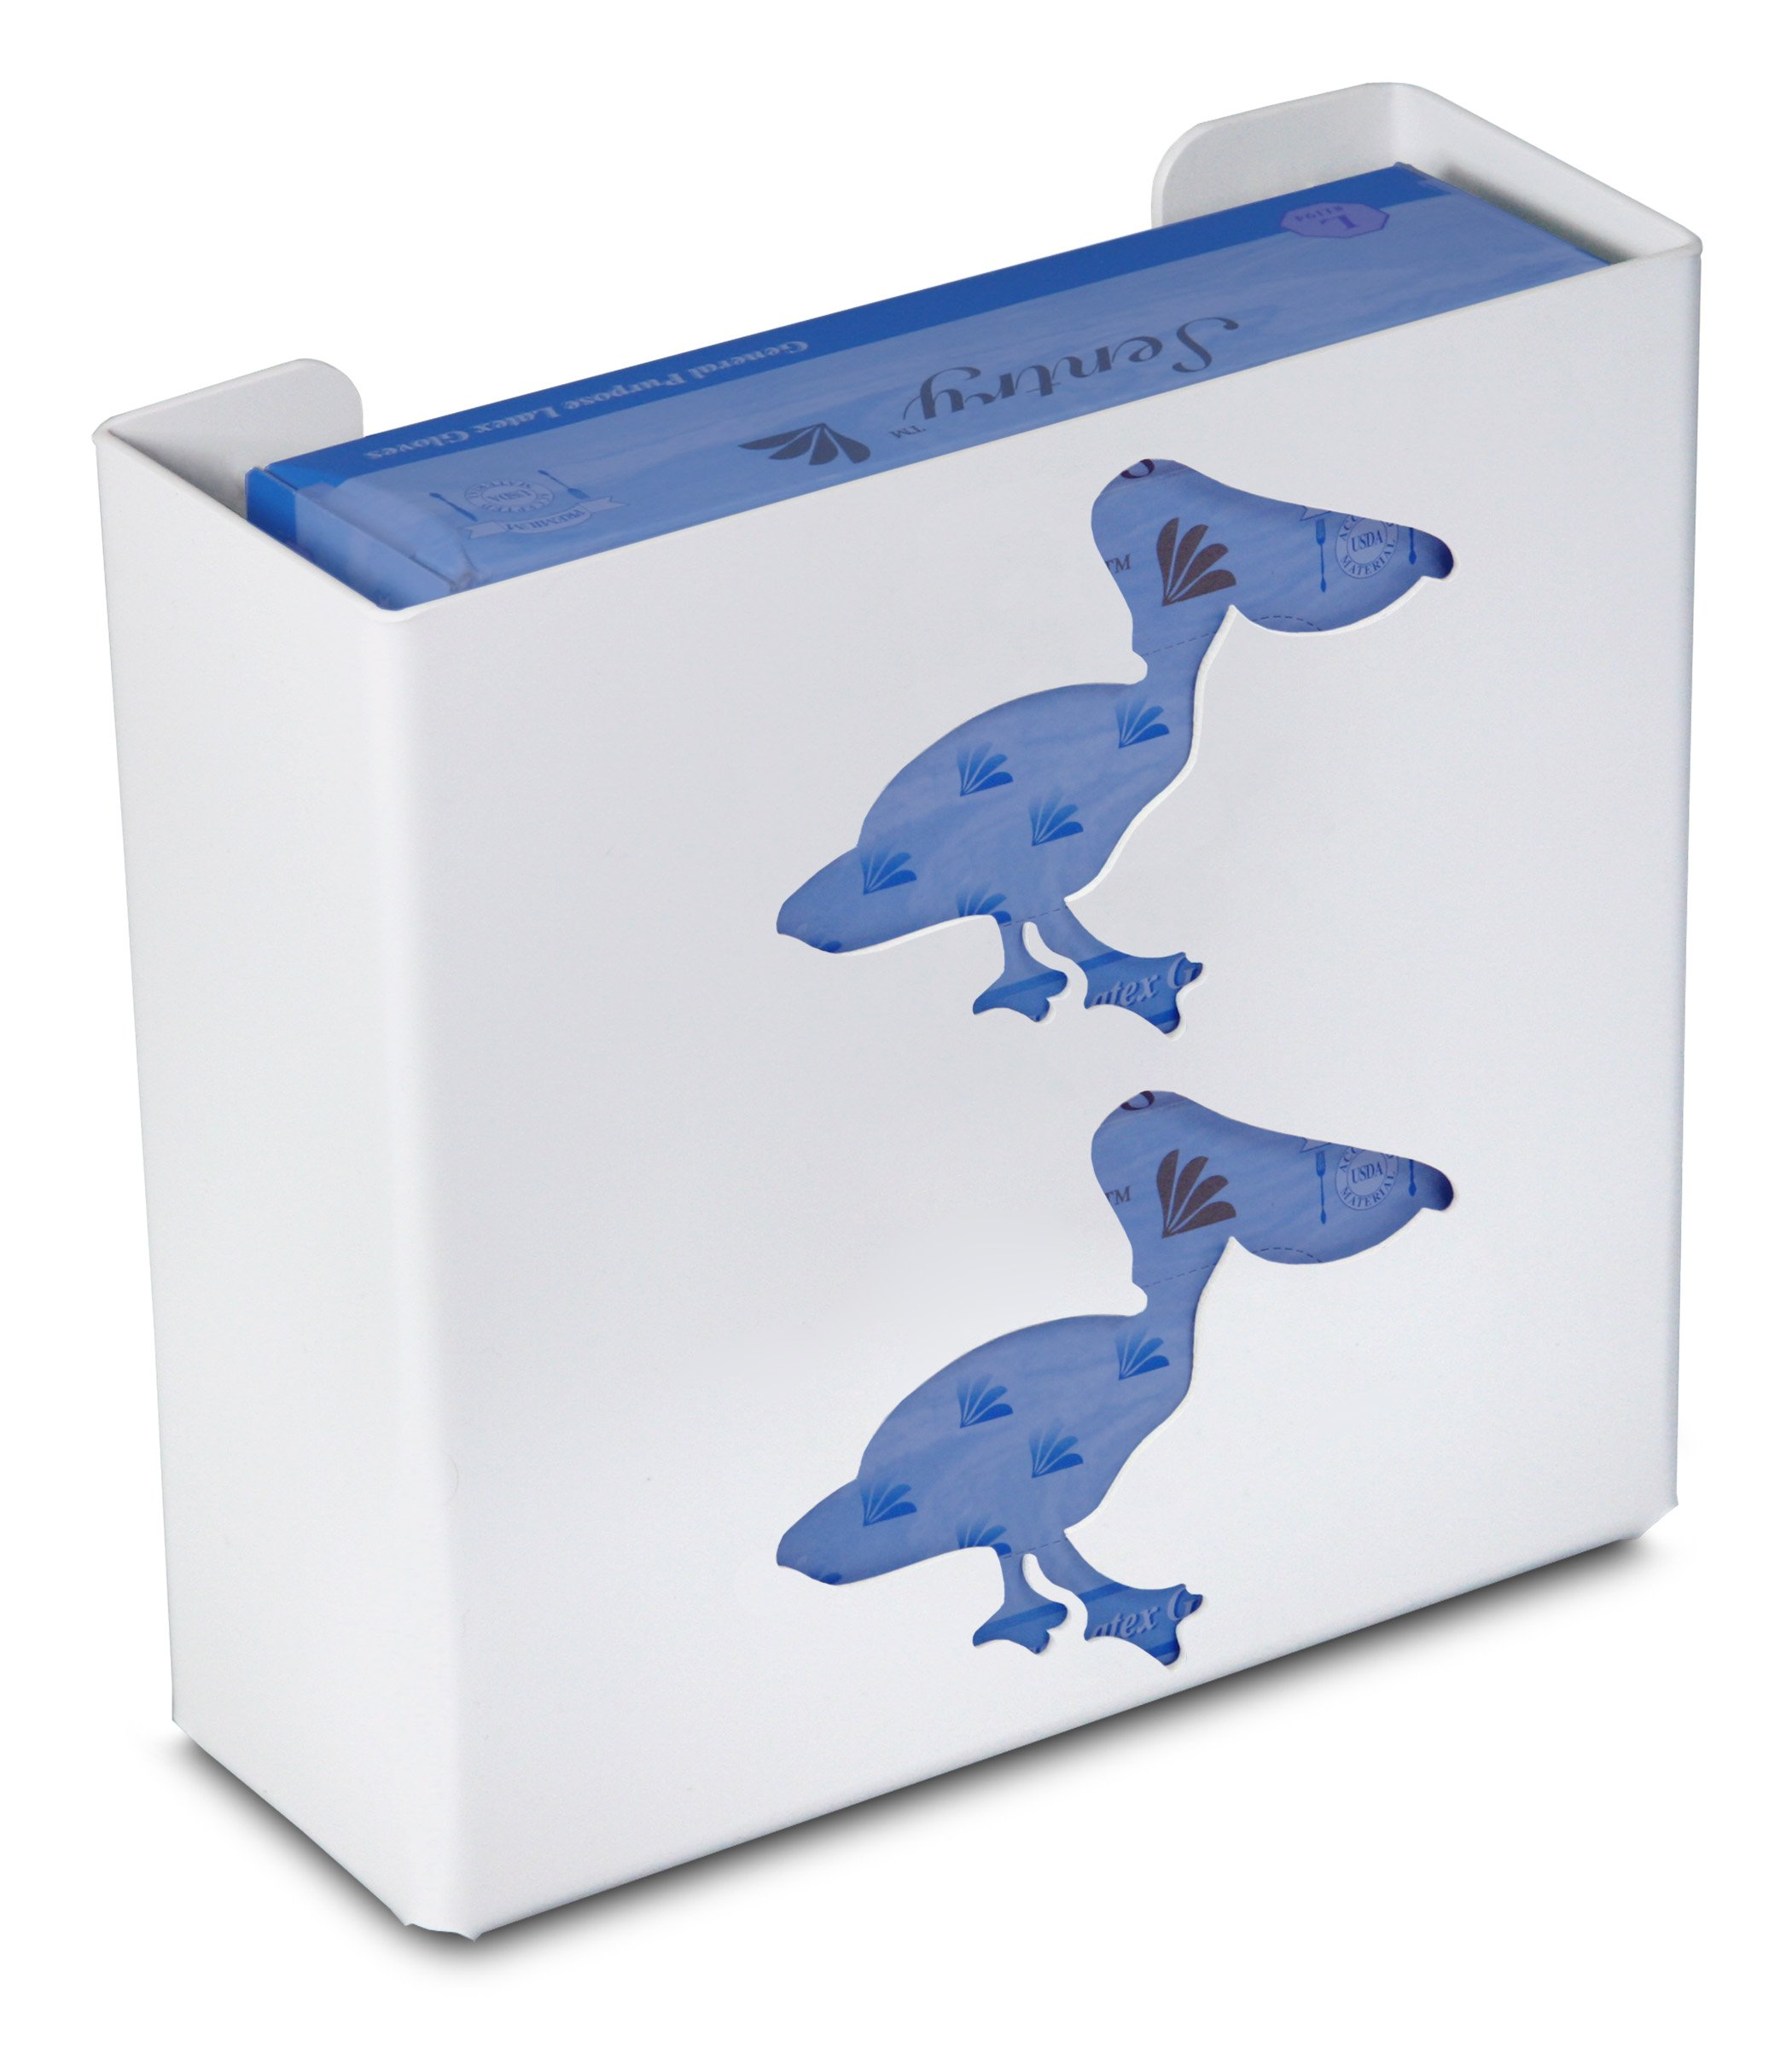 TrippNT 50864 Priced Right Double Glove Box Holder with Pelican, 11'' Width x 10'' Height x 4'' Depth